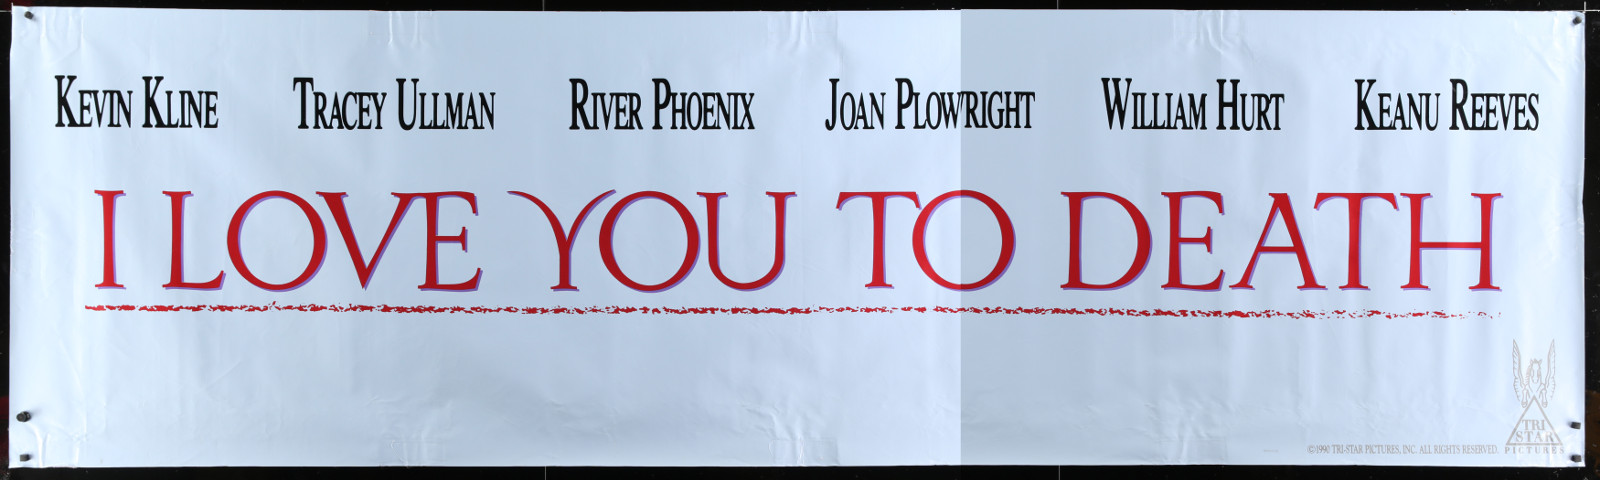 I Love You To Death 2A151 A Part Of A Lot 5 Vinyl Banners '88-90 Great Images From A Variety Of Different Movies!